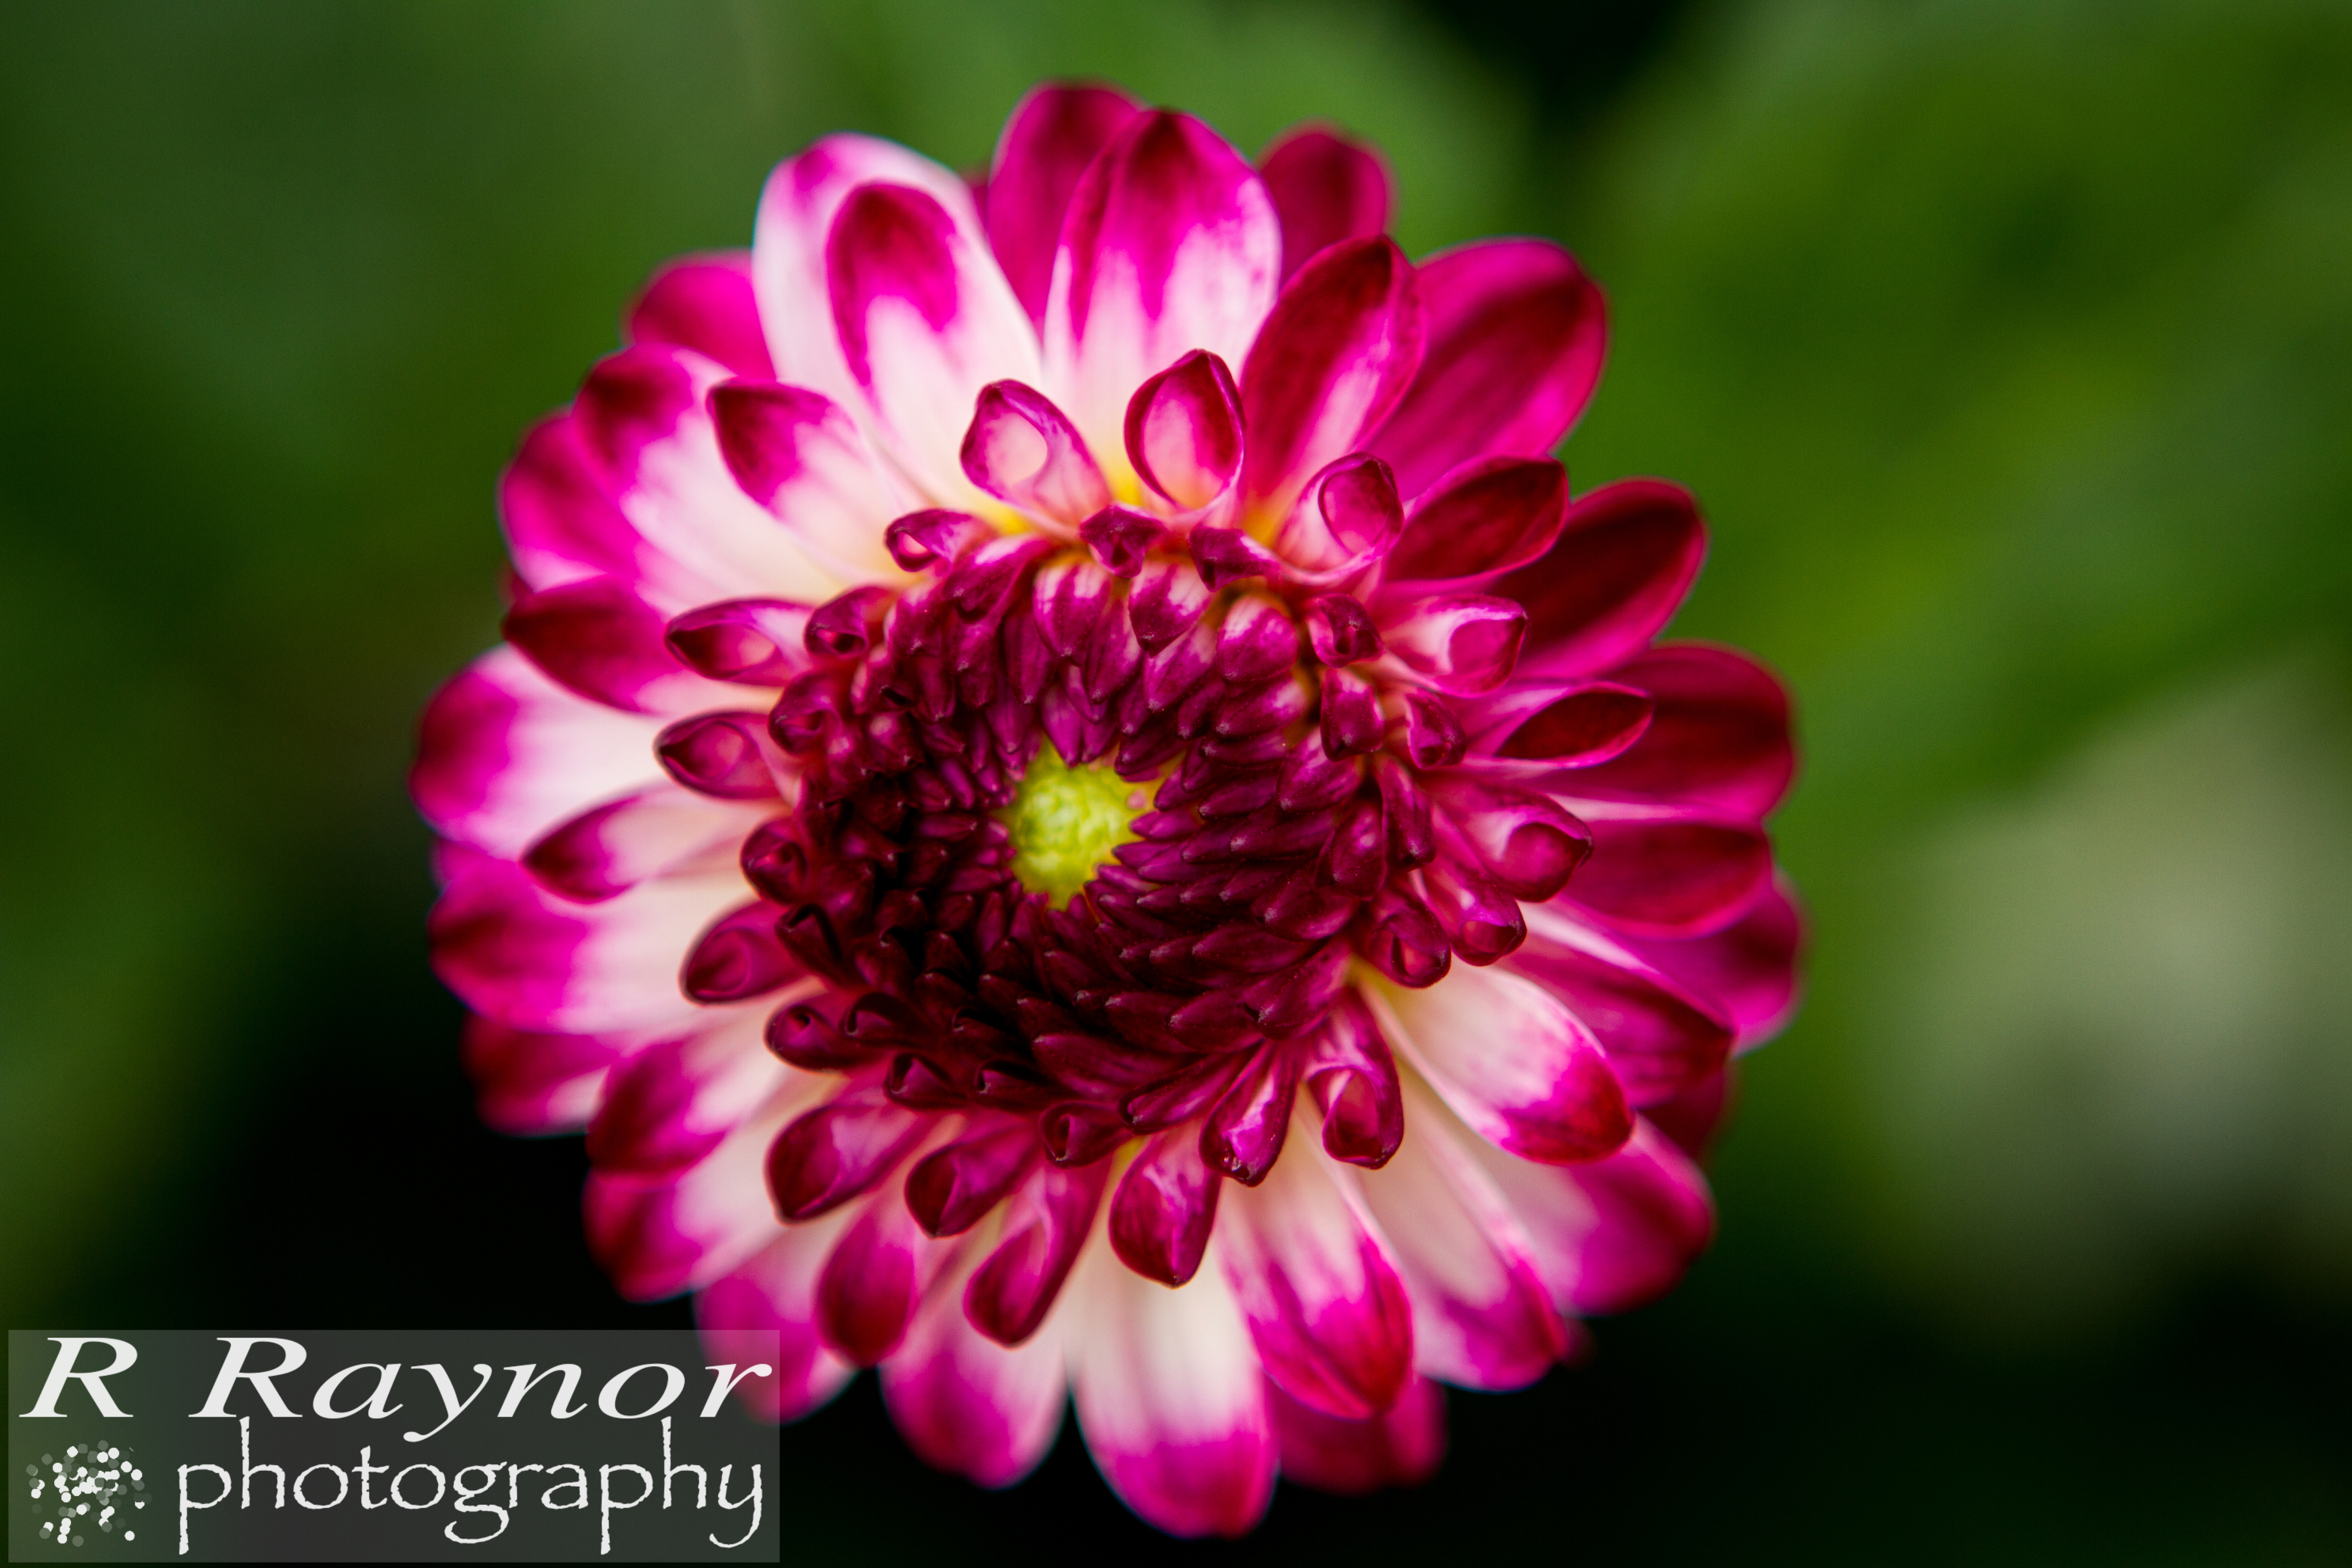 First_20150903_RRaynor0018